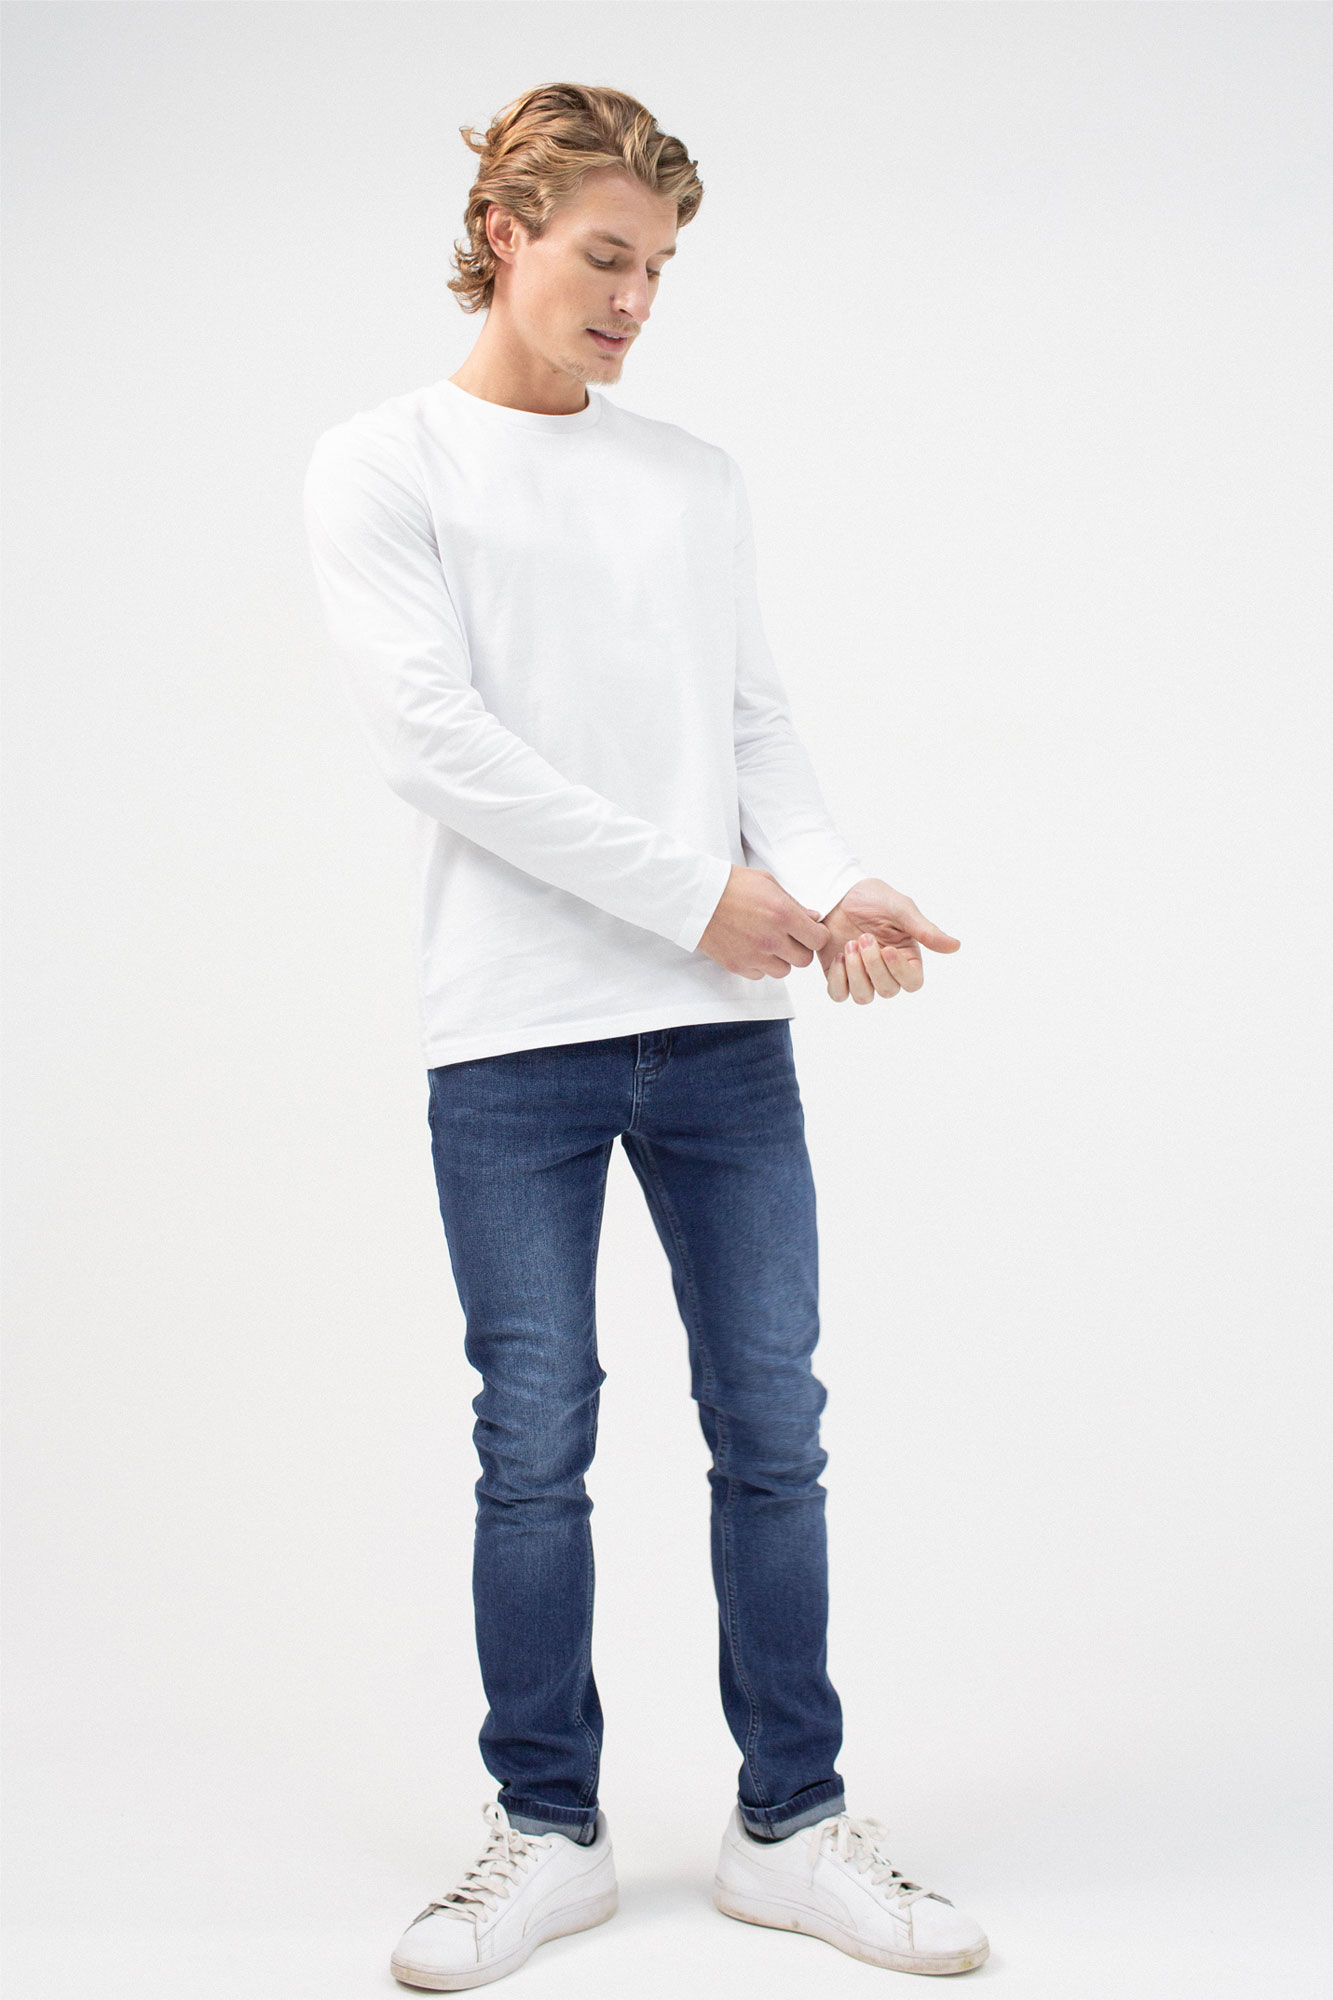 BenedictRaven Studio 0107 1 - Lounge Long Sleeved T-Shirt White